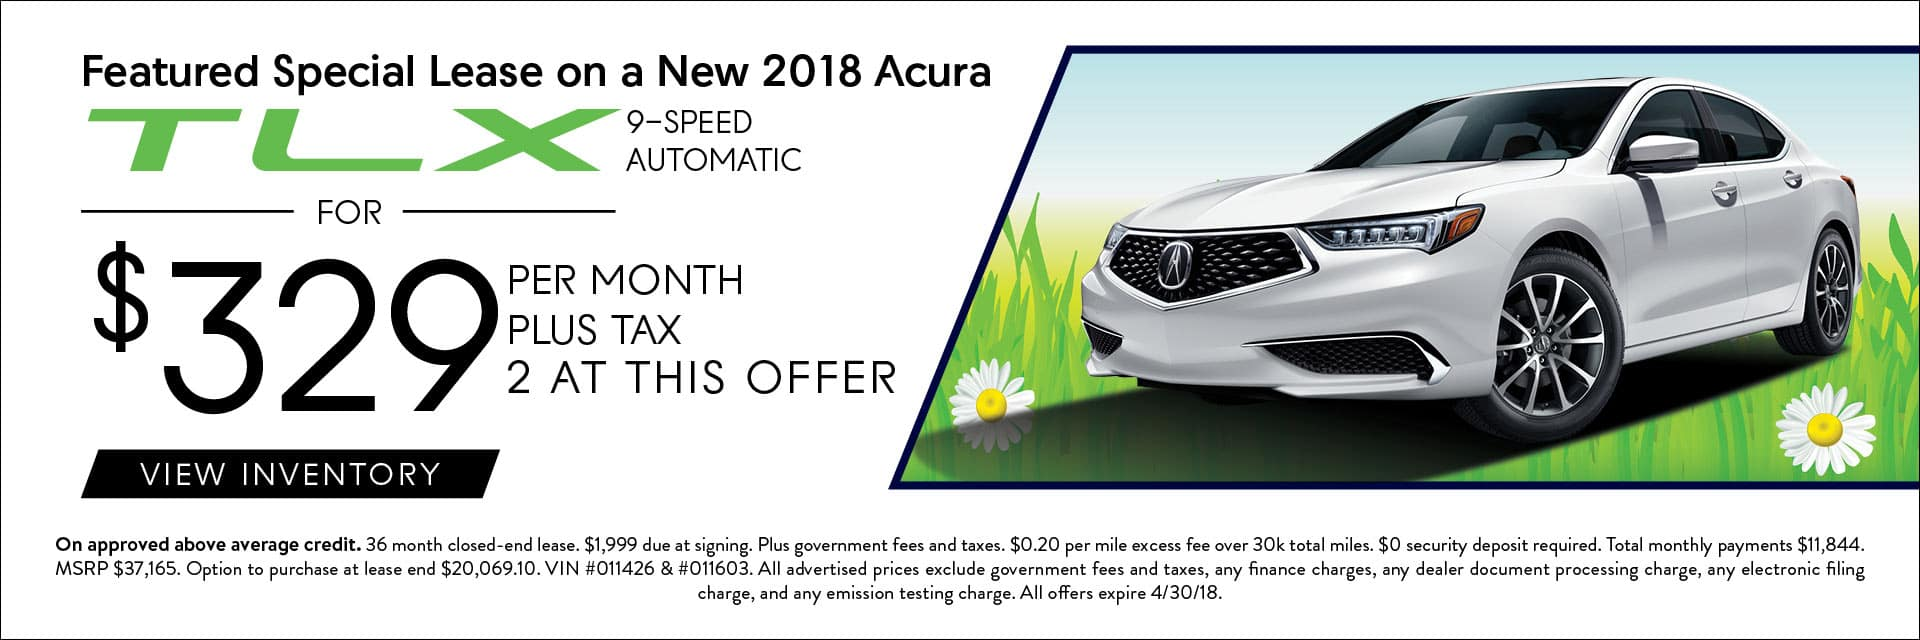 2018 Acura TLX Offers Banner